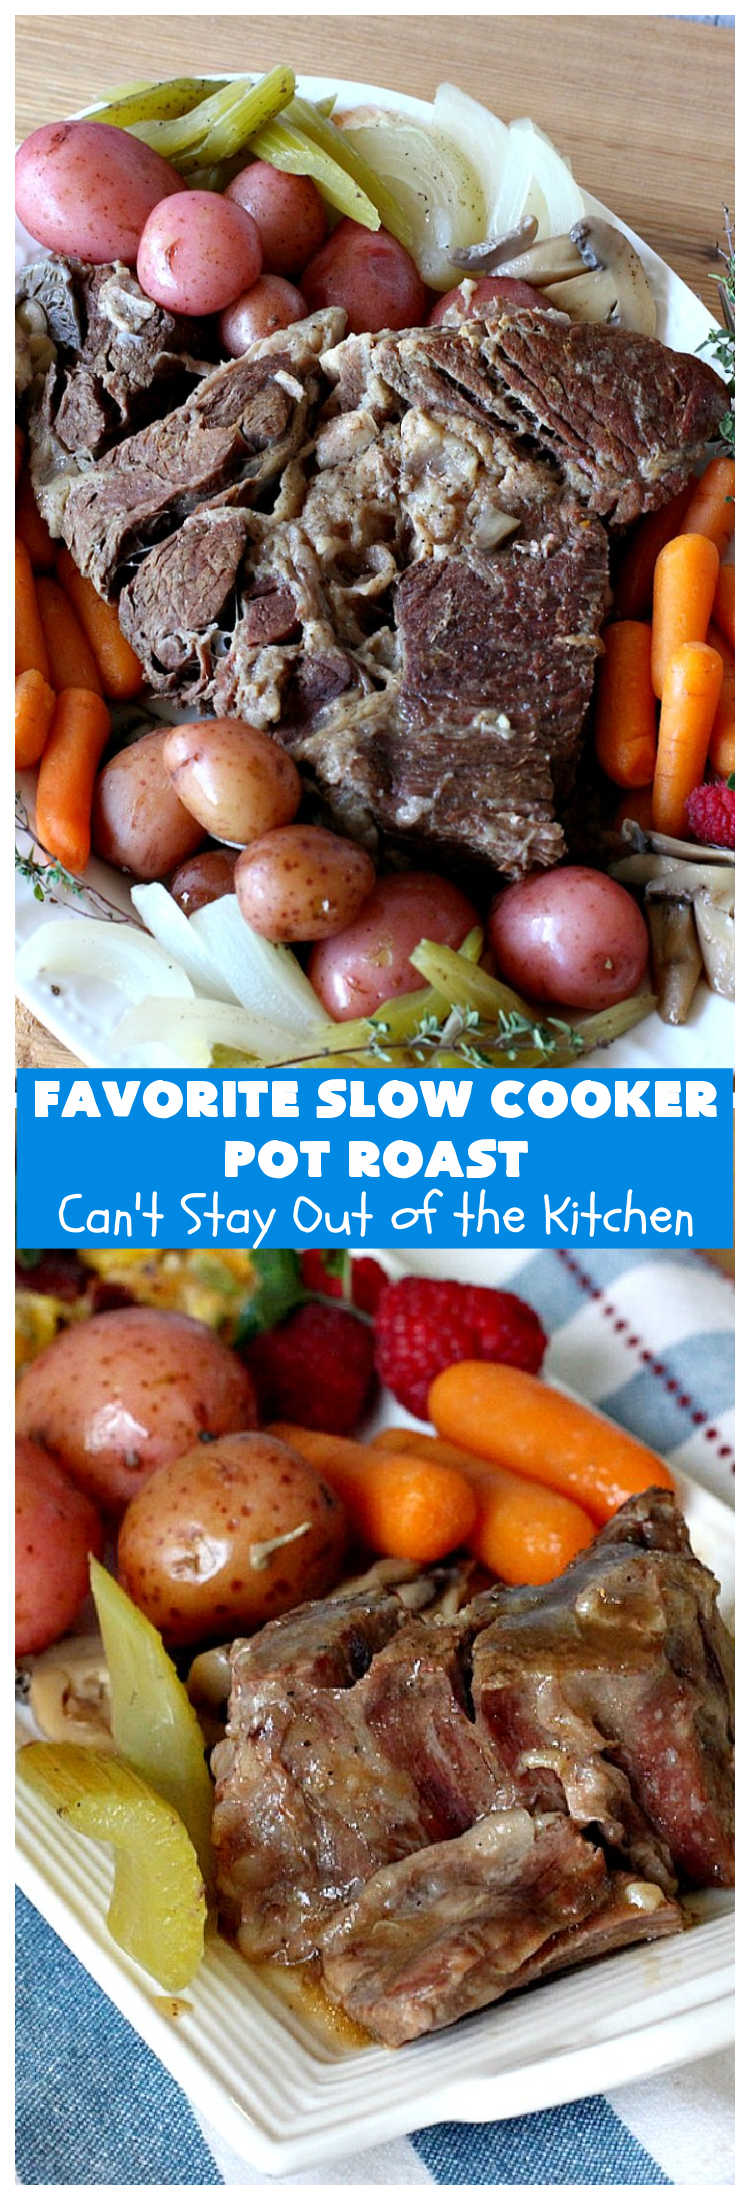 Favorite Slow Cooker Pot Roast | Can't Stay Out of the Kitchen | this family favorite #recipe always gets rave reviews whenever we make it. The #gravy is wonderful. If you enjoy #PotRoast this easy #SlowCooker version is perfect for you! #potatoes #carrots #mushrooms #beef #FavoriteSlowCookerPotRoast